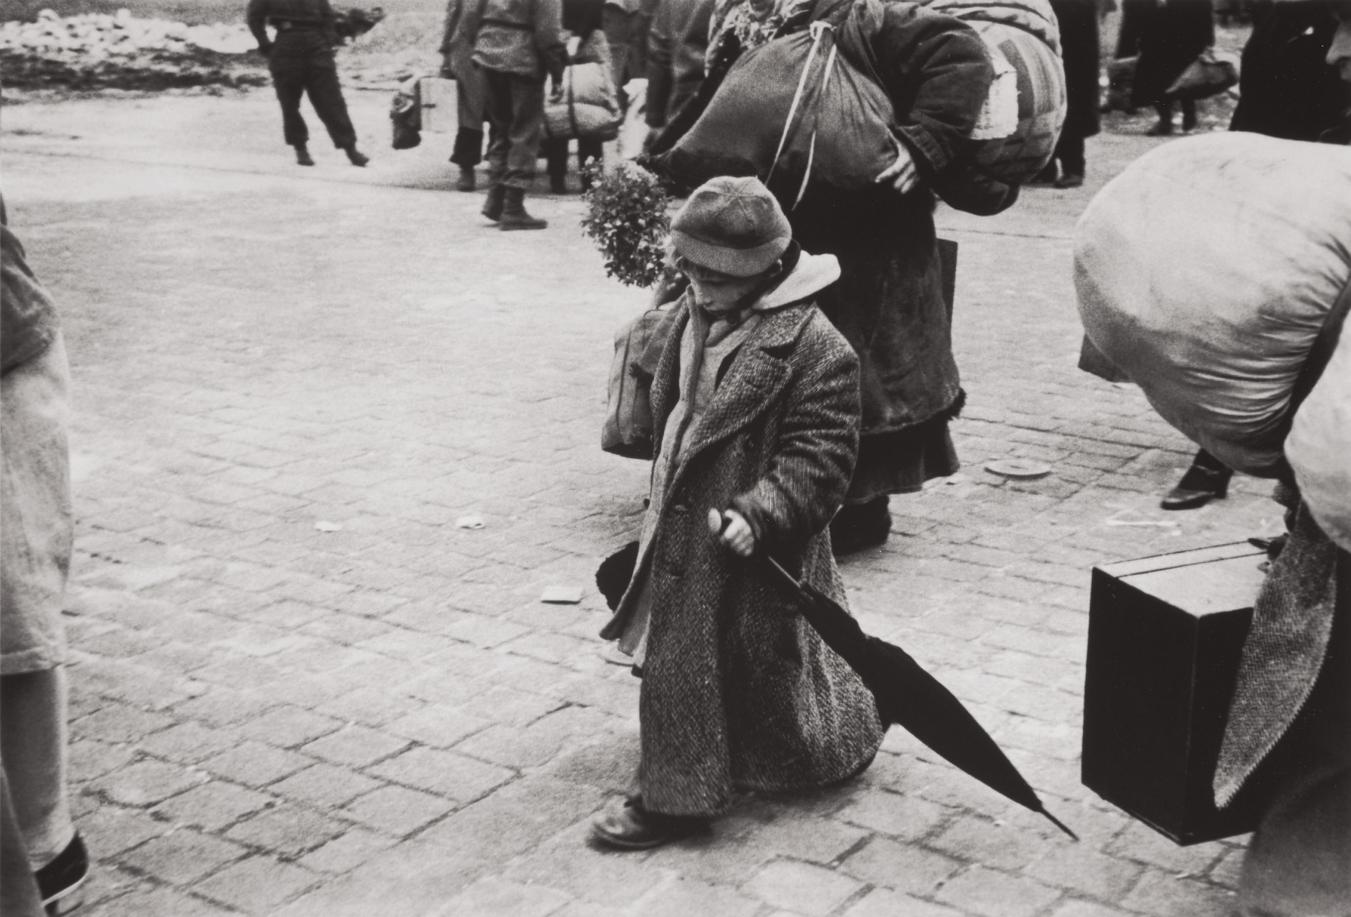 Henri Cartier-Bresson-A Soviet Child Who Was Deported With His Parents, Returning To His Homeland, Transit Camp, Dessau, Germany-1945